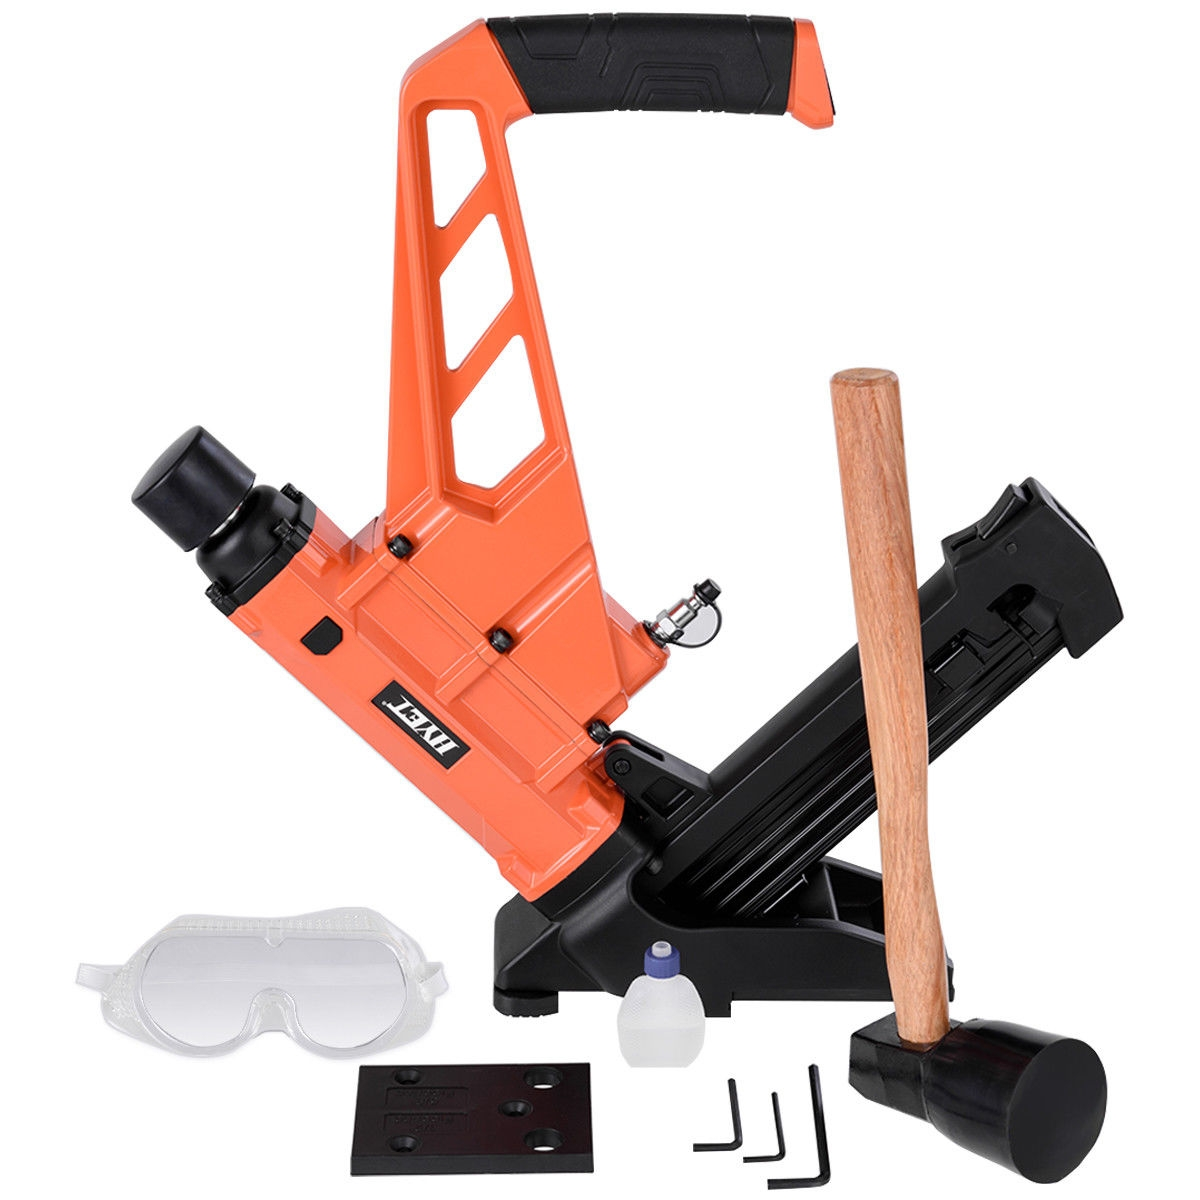 2-in-1 Dual Handle Flooring Nailer and Stapler with Hammer